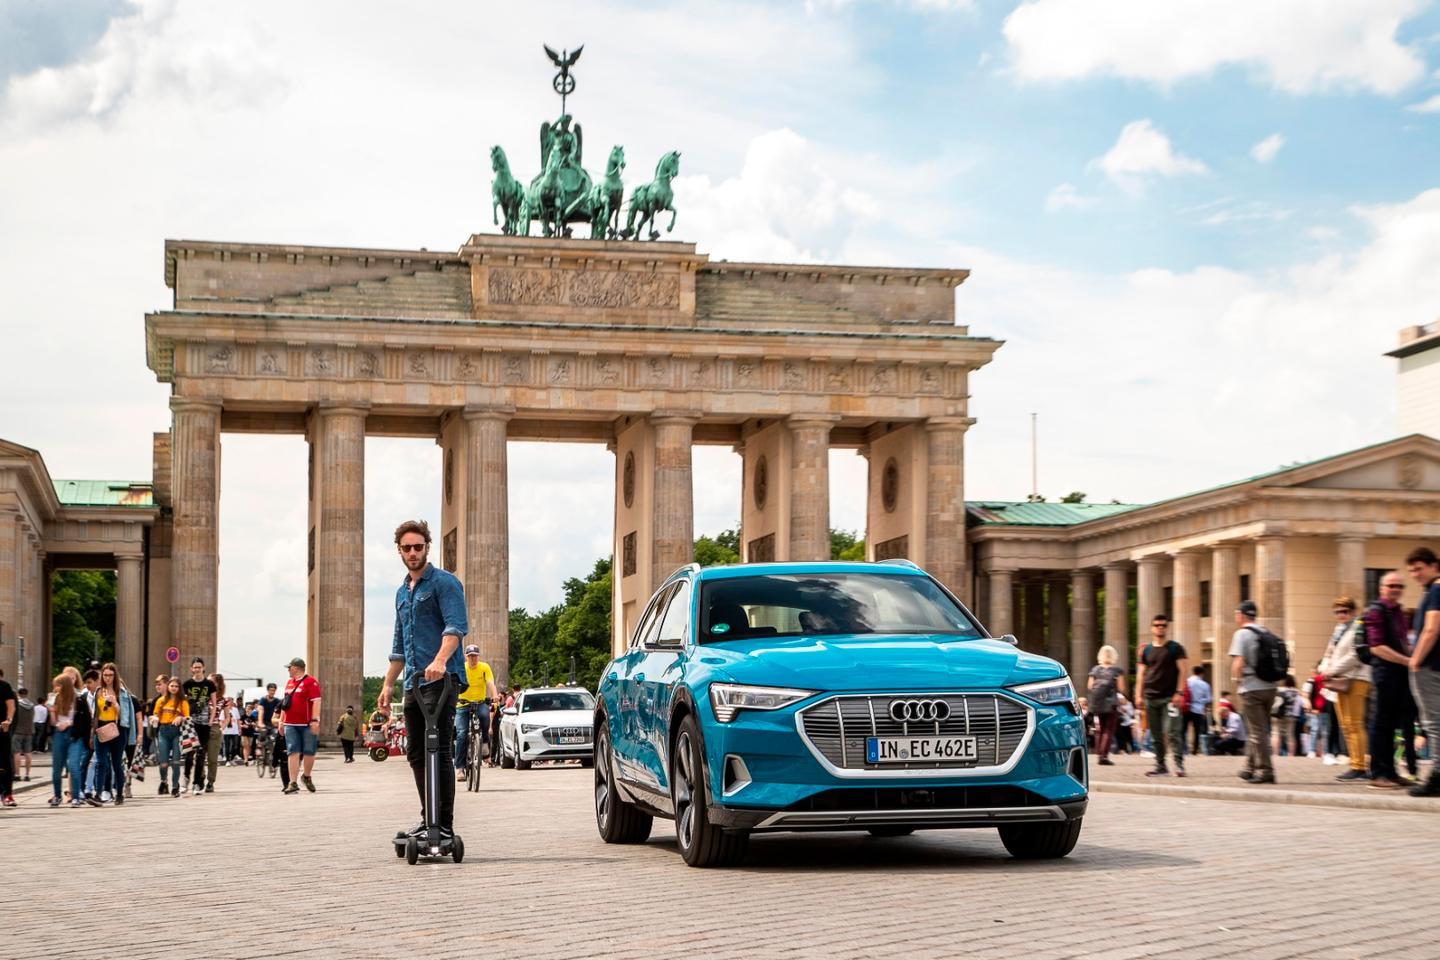 The Audi e-tron Scooter is due to go into production by the end of 2020